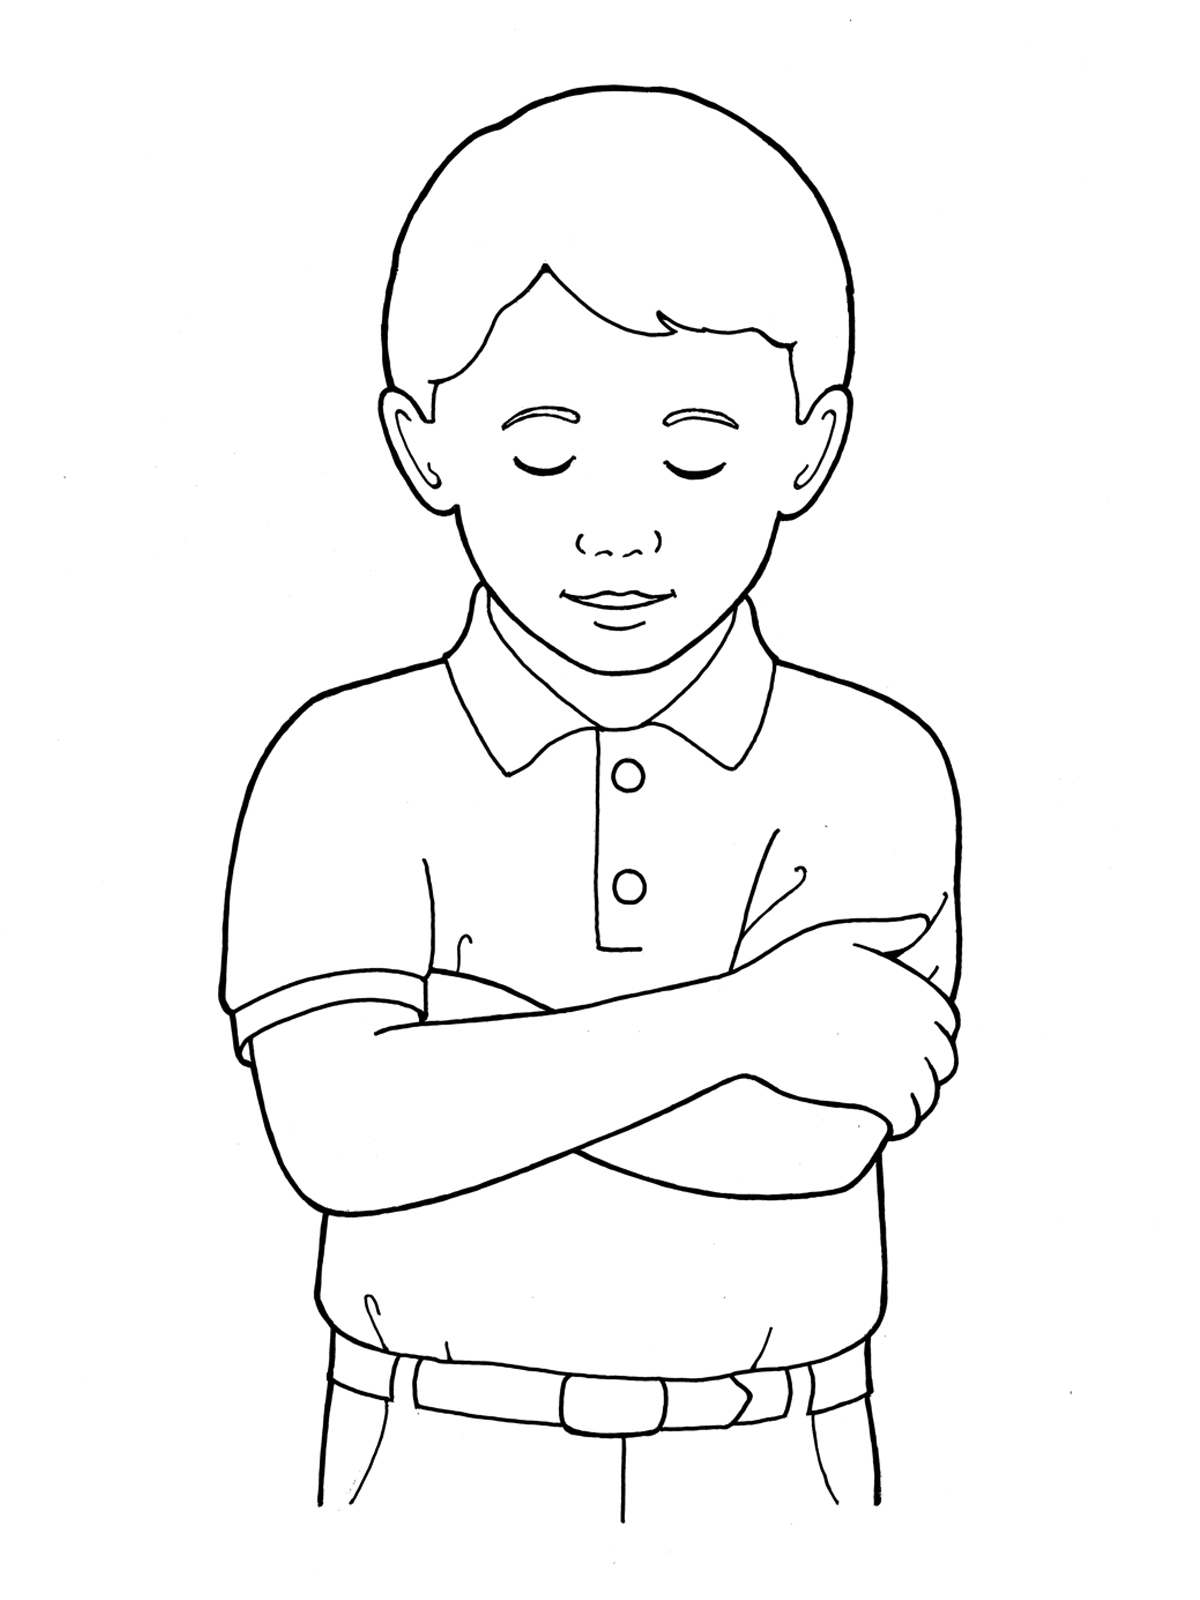 Little boy black and white lds clipart picture black and white library Primary Boy Folding Arms and Bowing Head picture black and white library